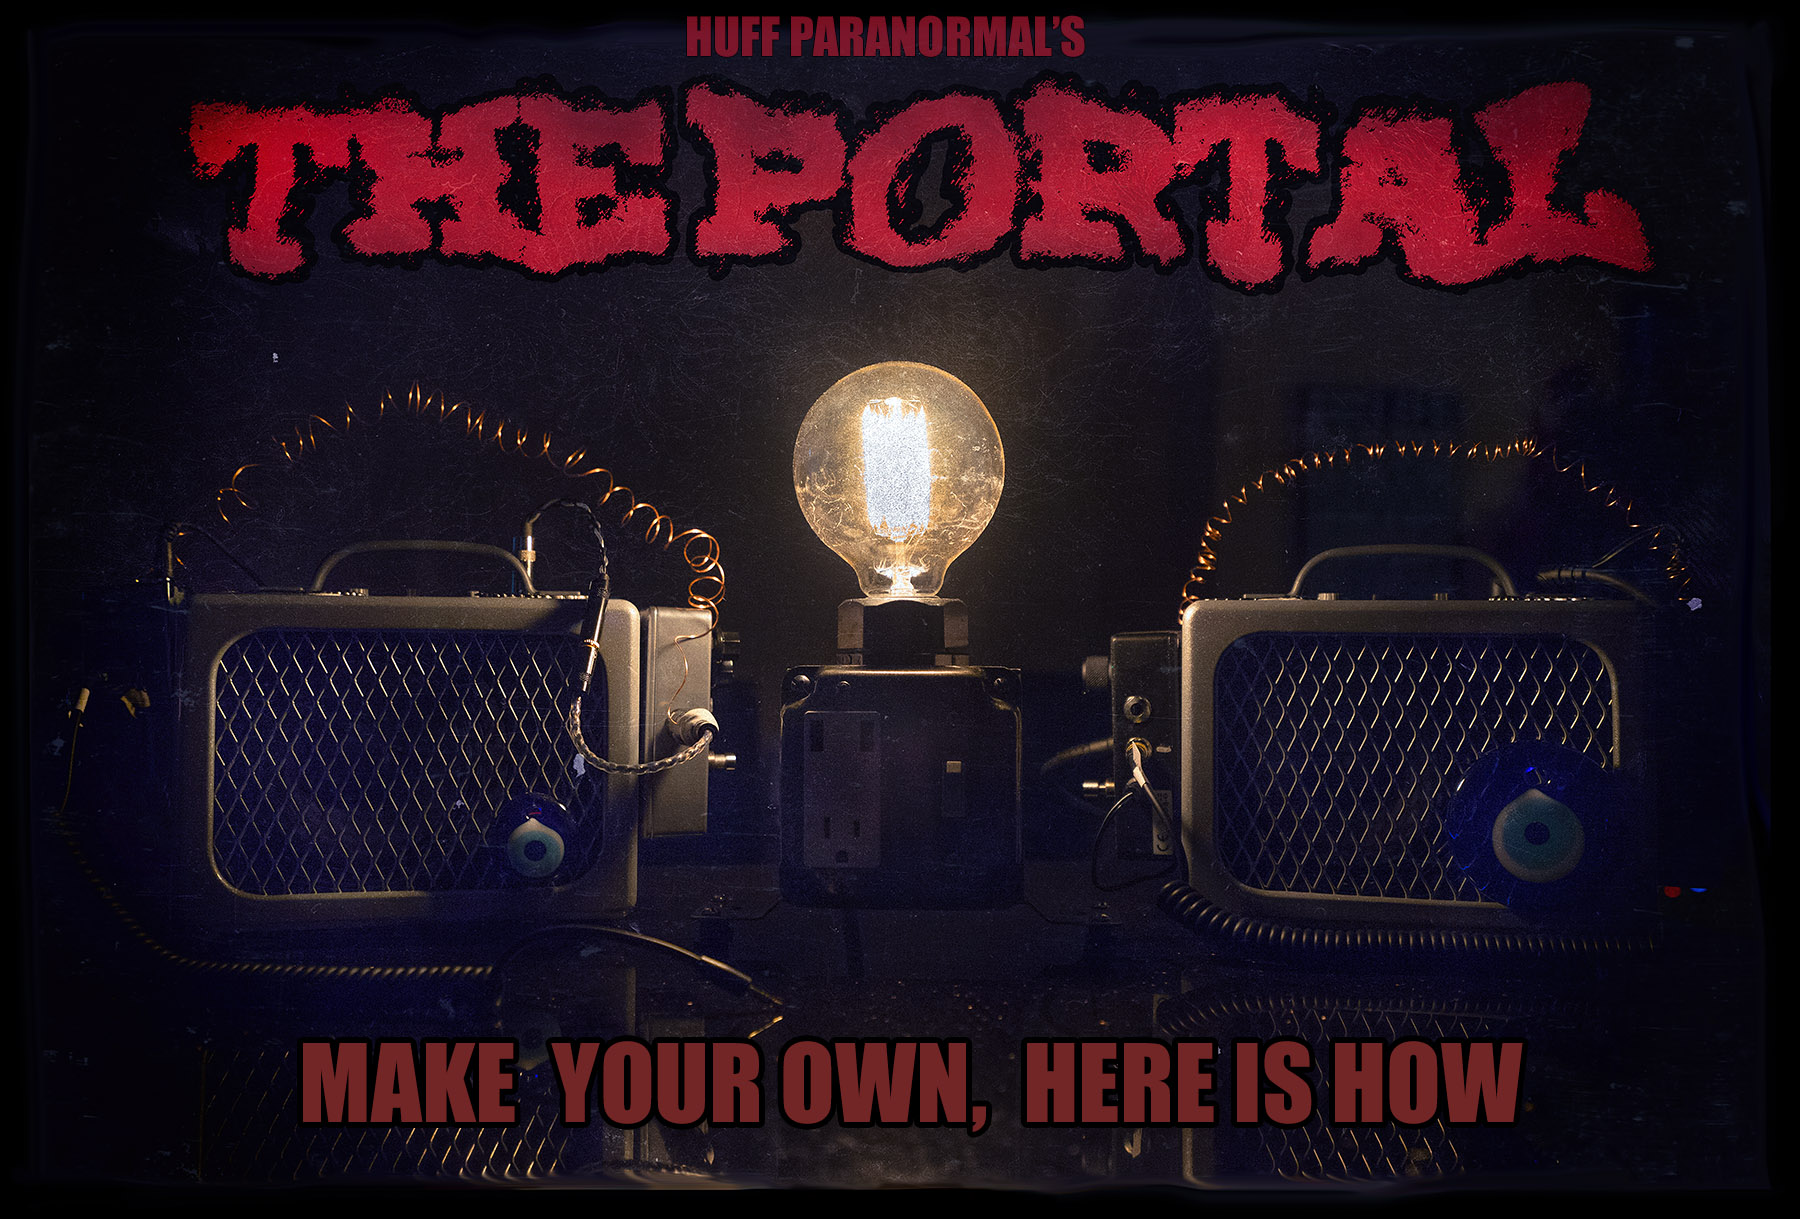 THE PORTAL: MAXIMUM SPIRIT RESPONSE  HOW TO MAKE YOUR OWN